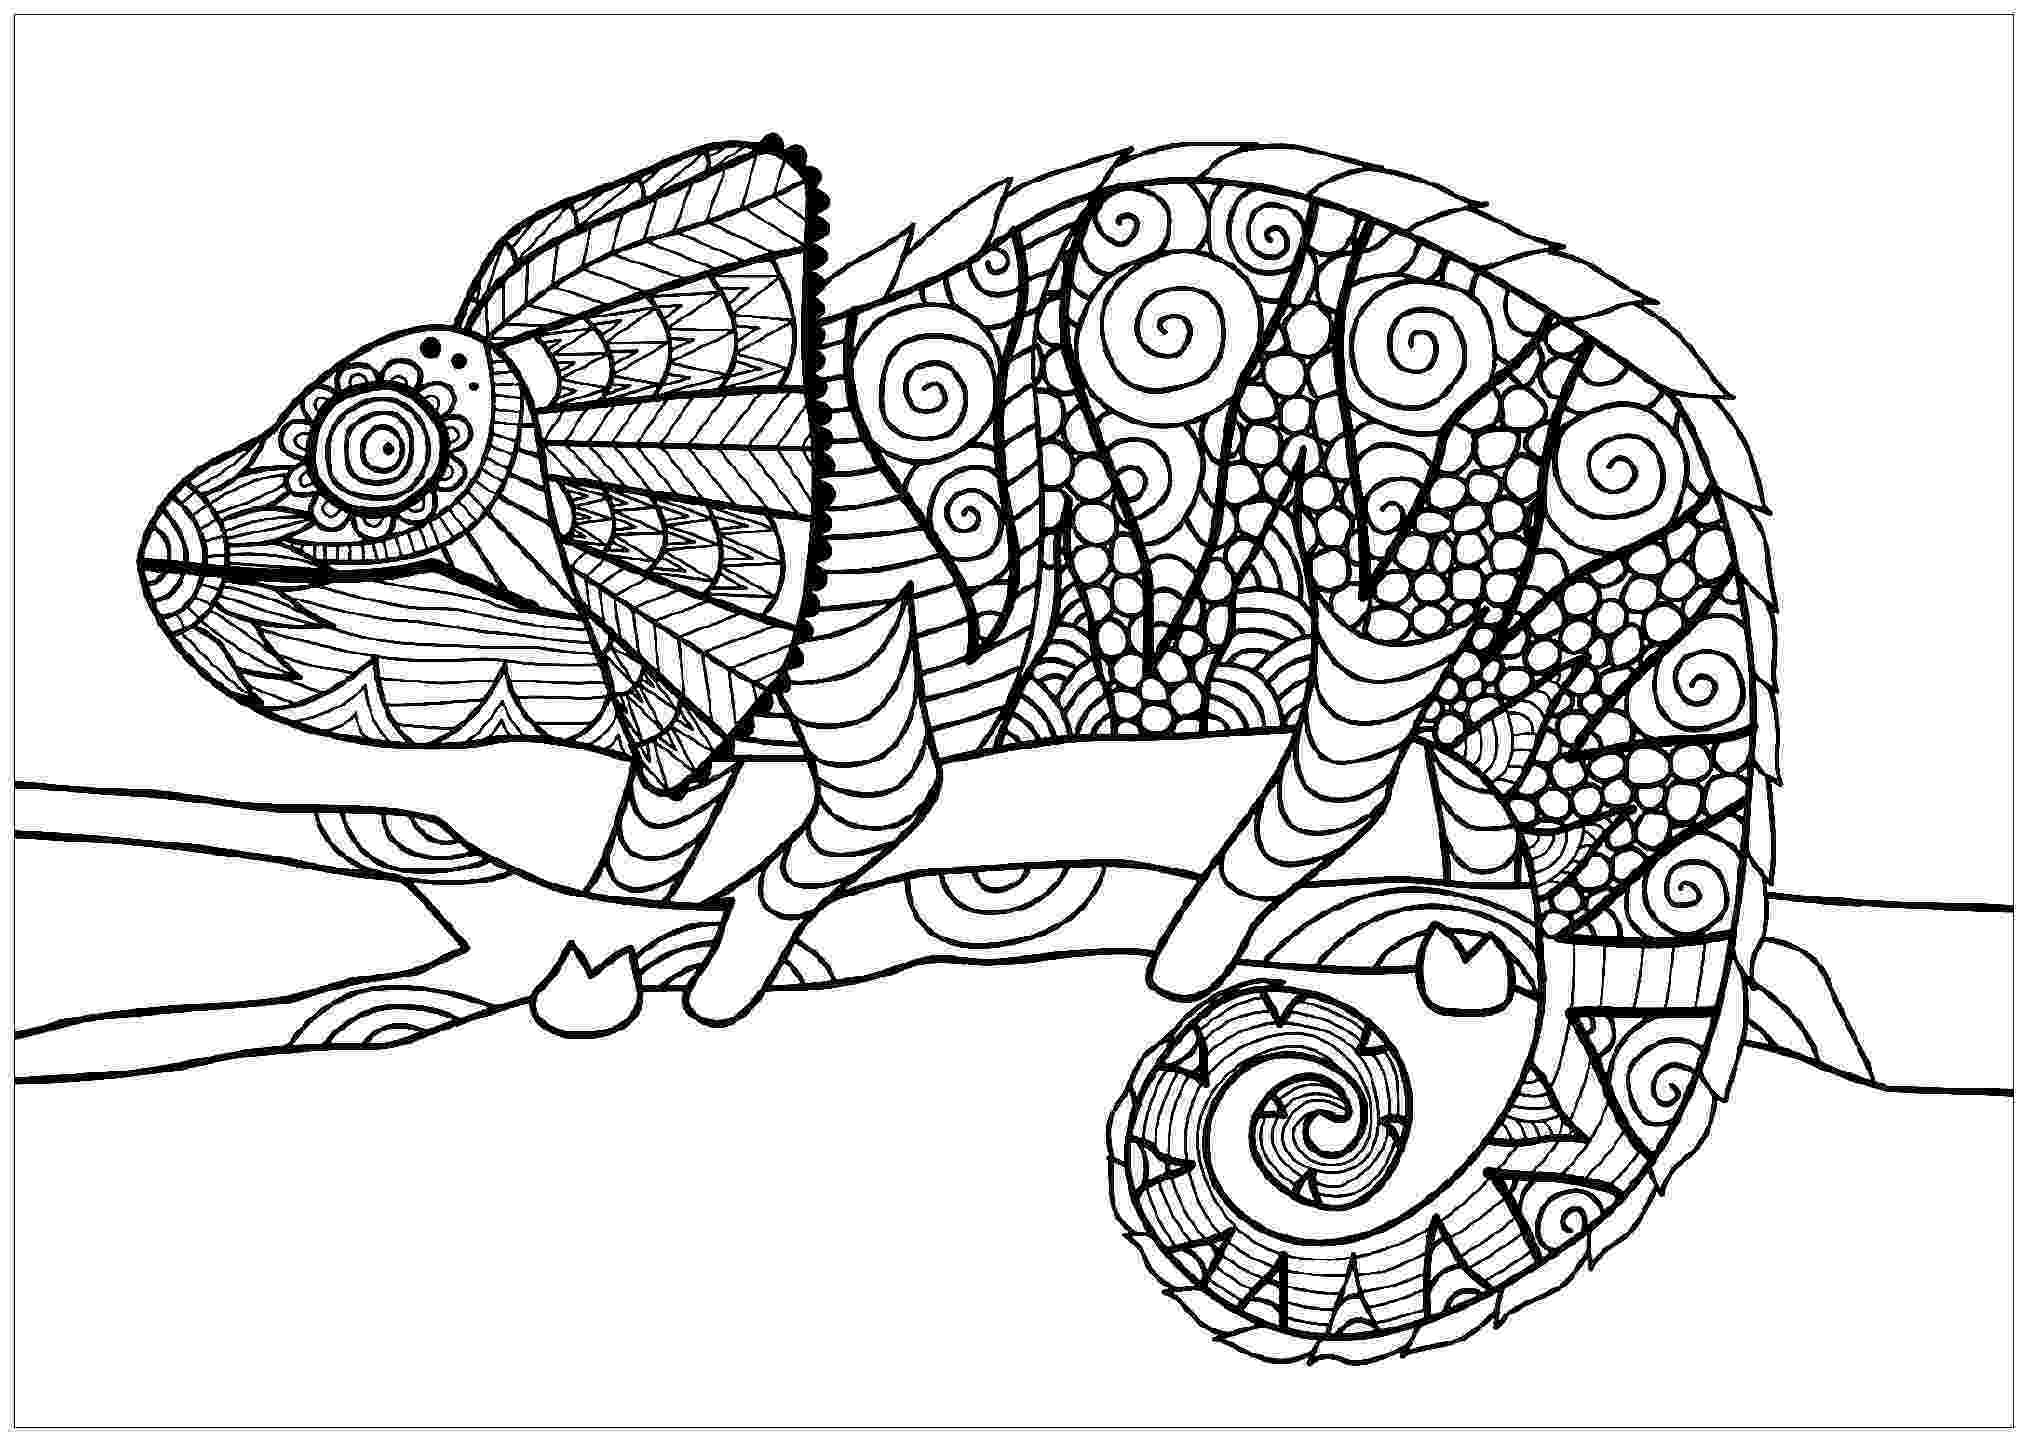 chameleon coloring pages chameleon coloring pages best coloring pages for kids chameleon coloring pages